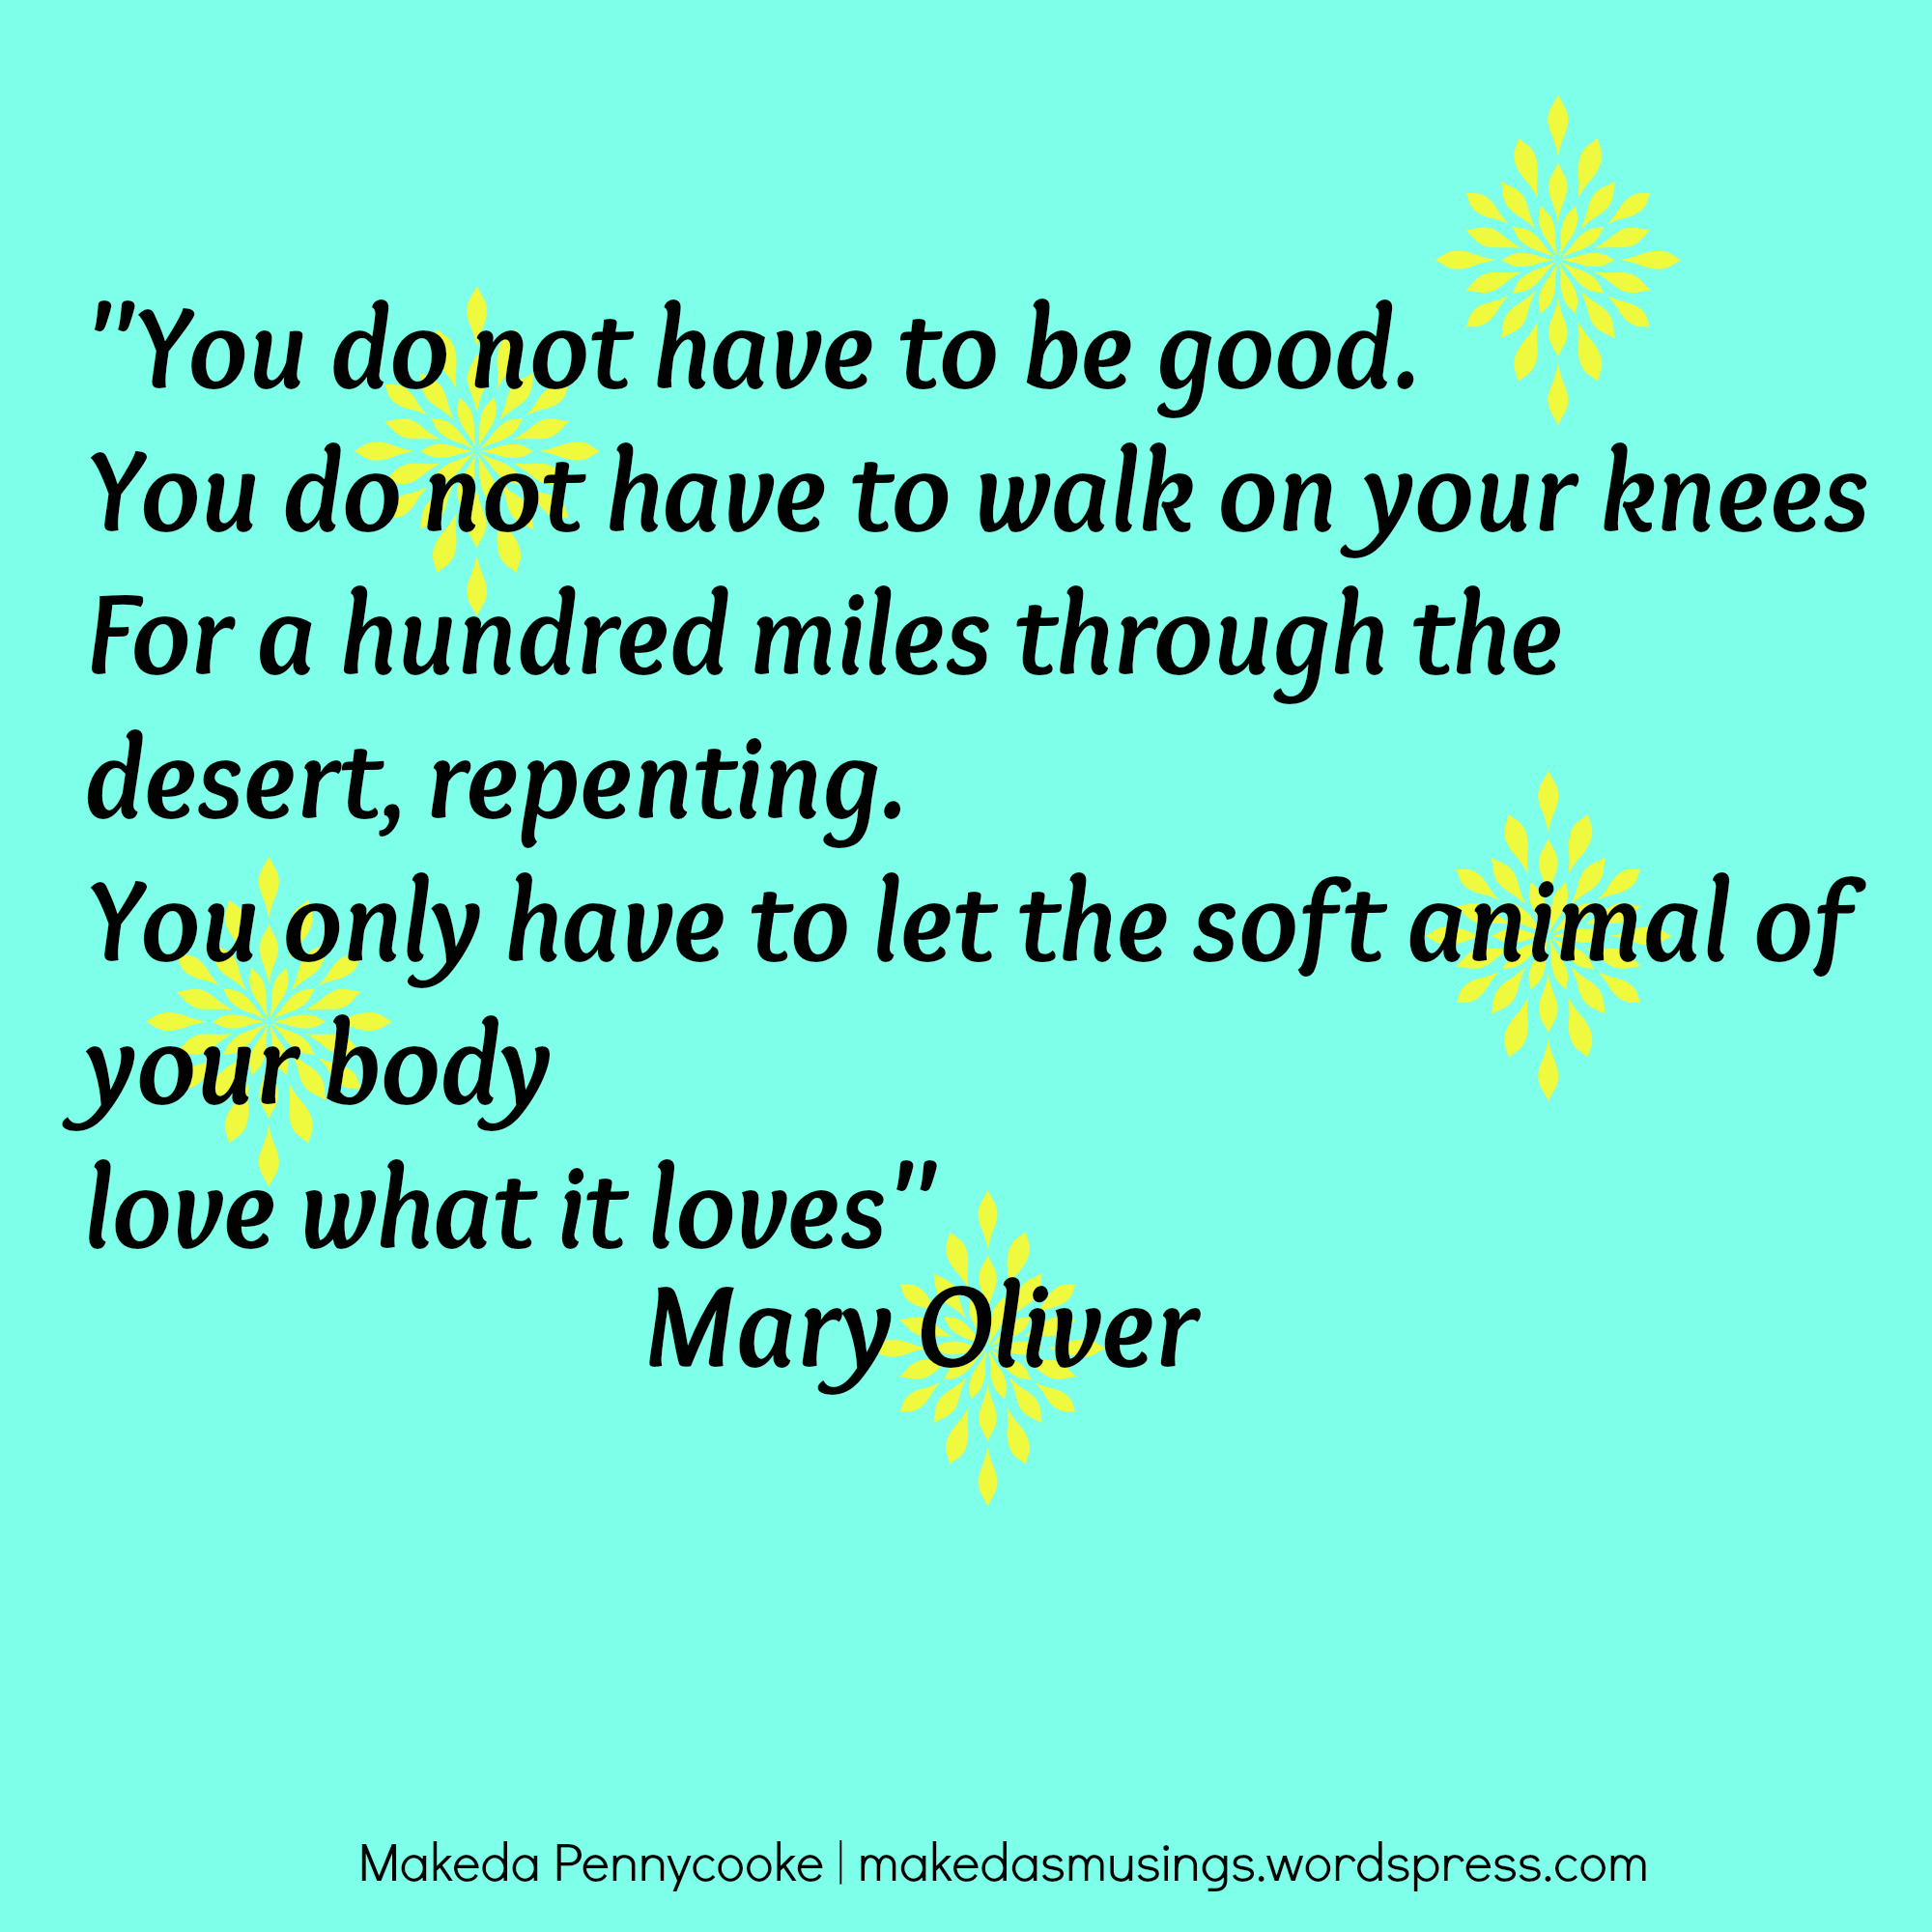 Mary Oliver Love Quotes You Do Not Have To Be Good  Makeda's Musings